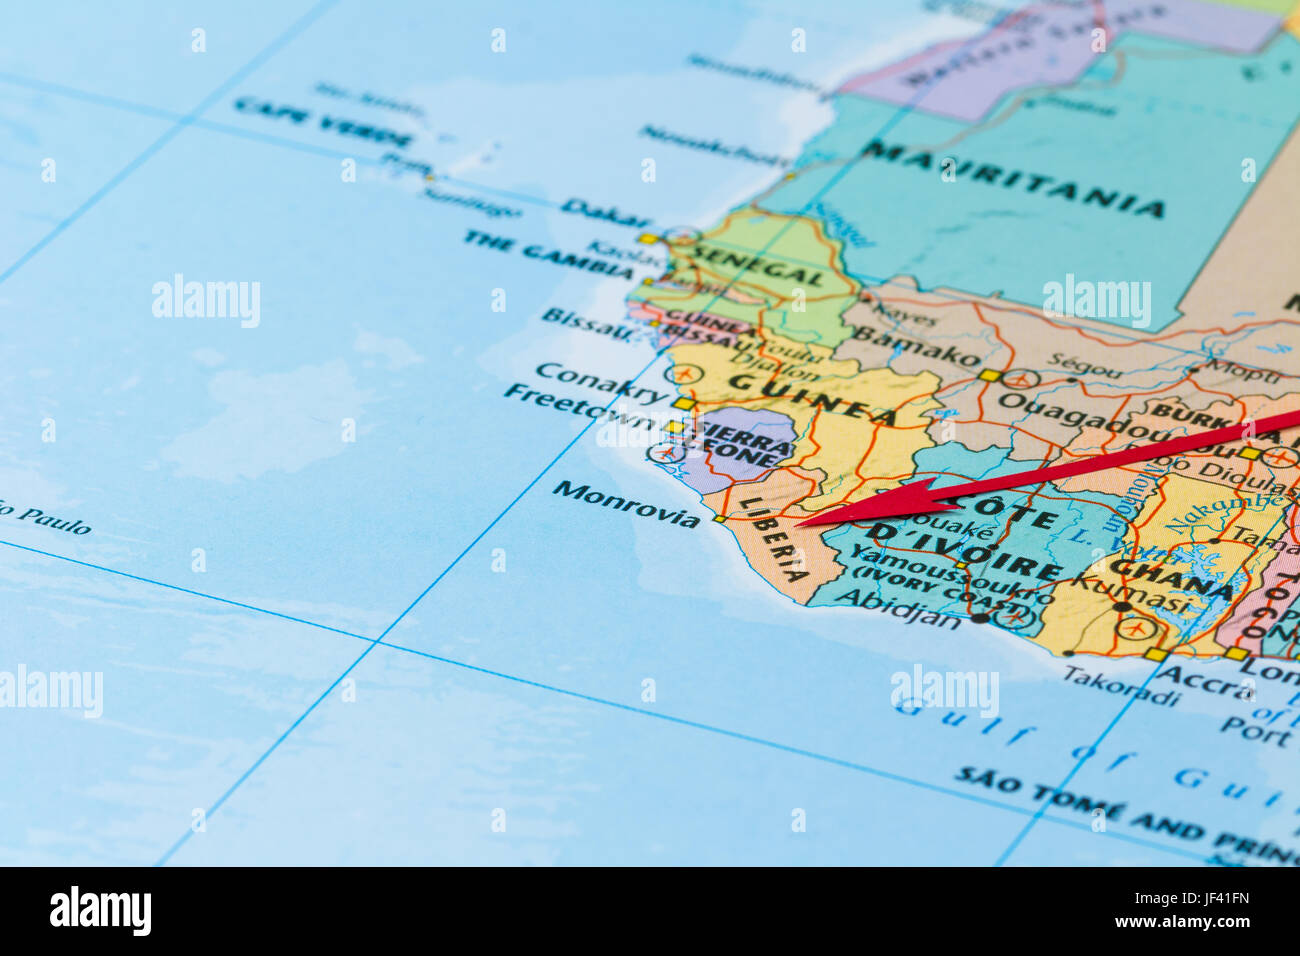 Photo of Liberia. Country indicated by red arrow. Country on African continent. - Stock Image